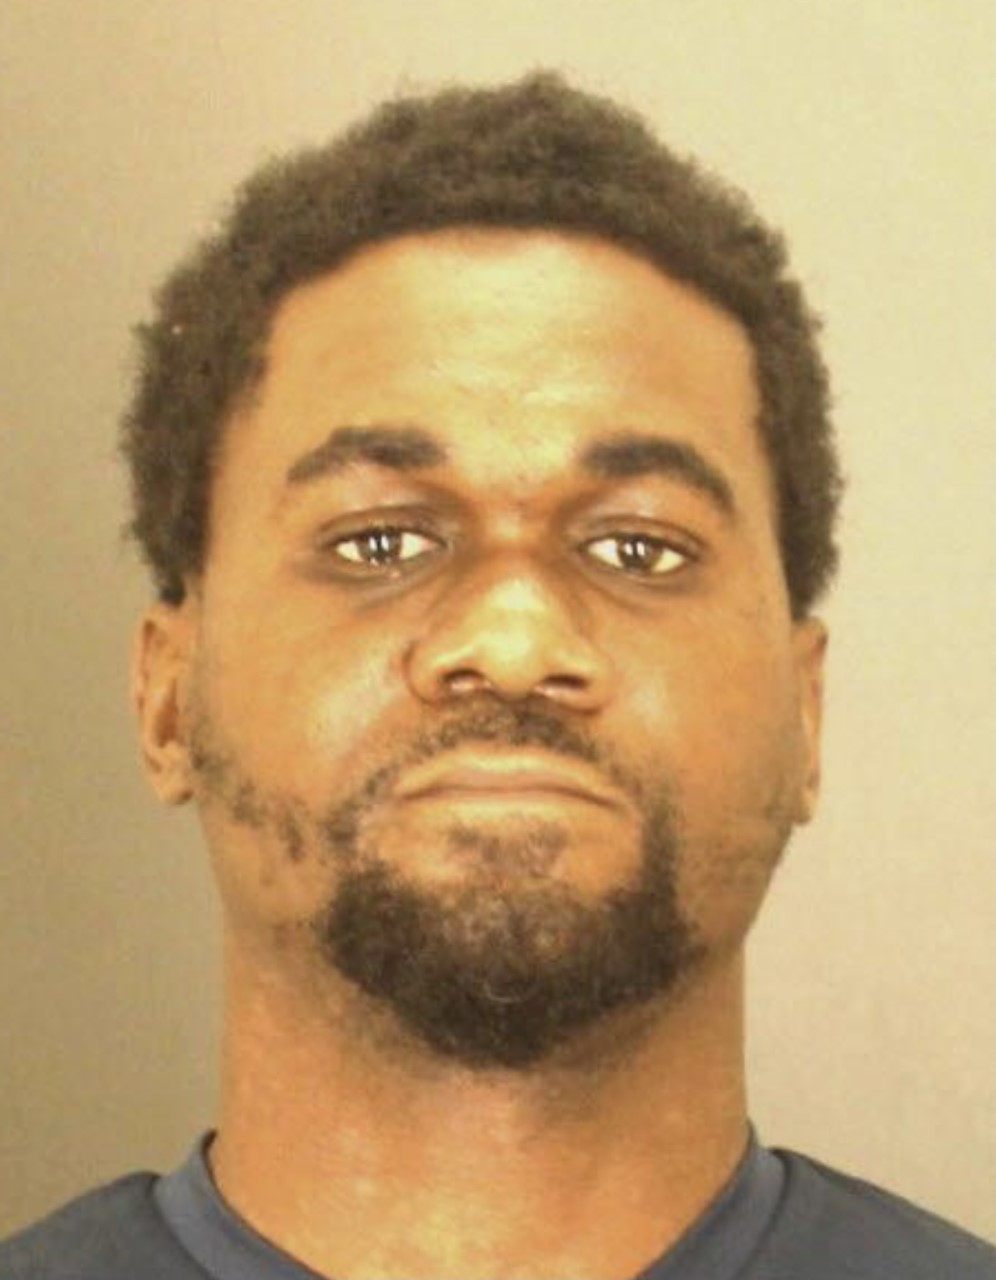 Baltimore man arrested and charged with 1st degree attempted murder